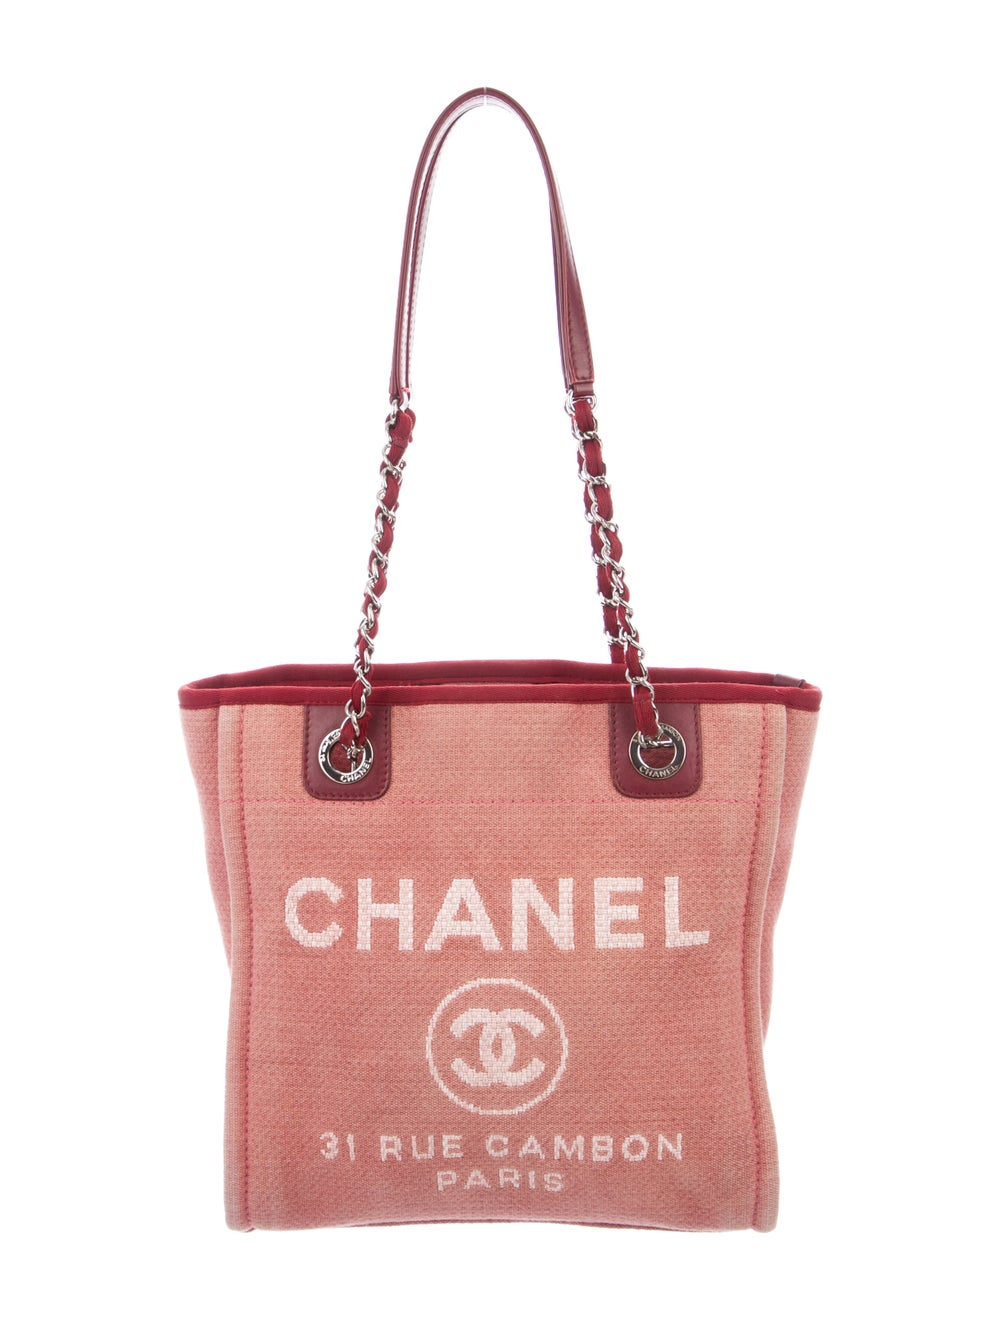 Chanel Small Deauville Bag Pink - image 1